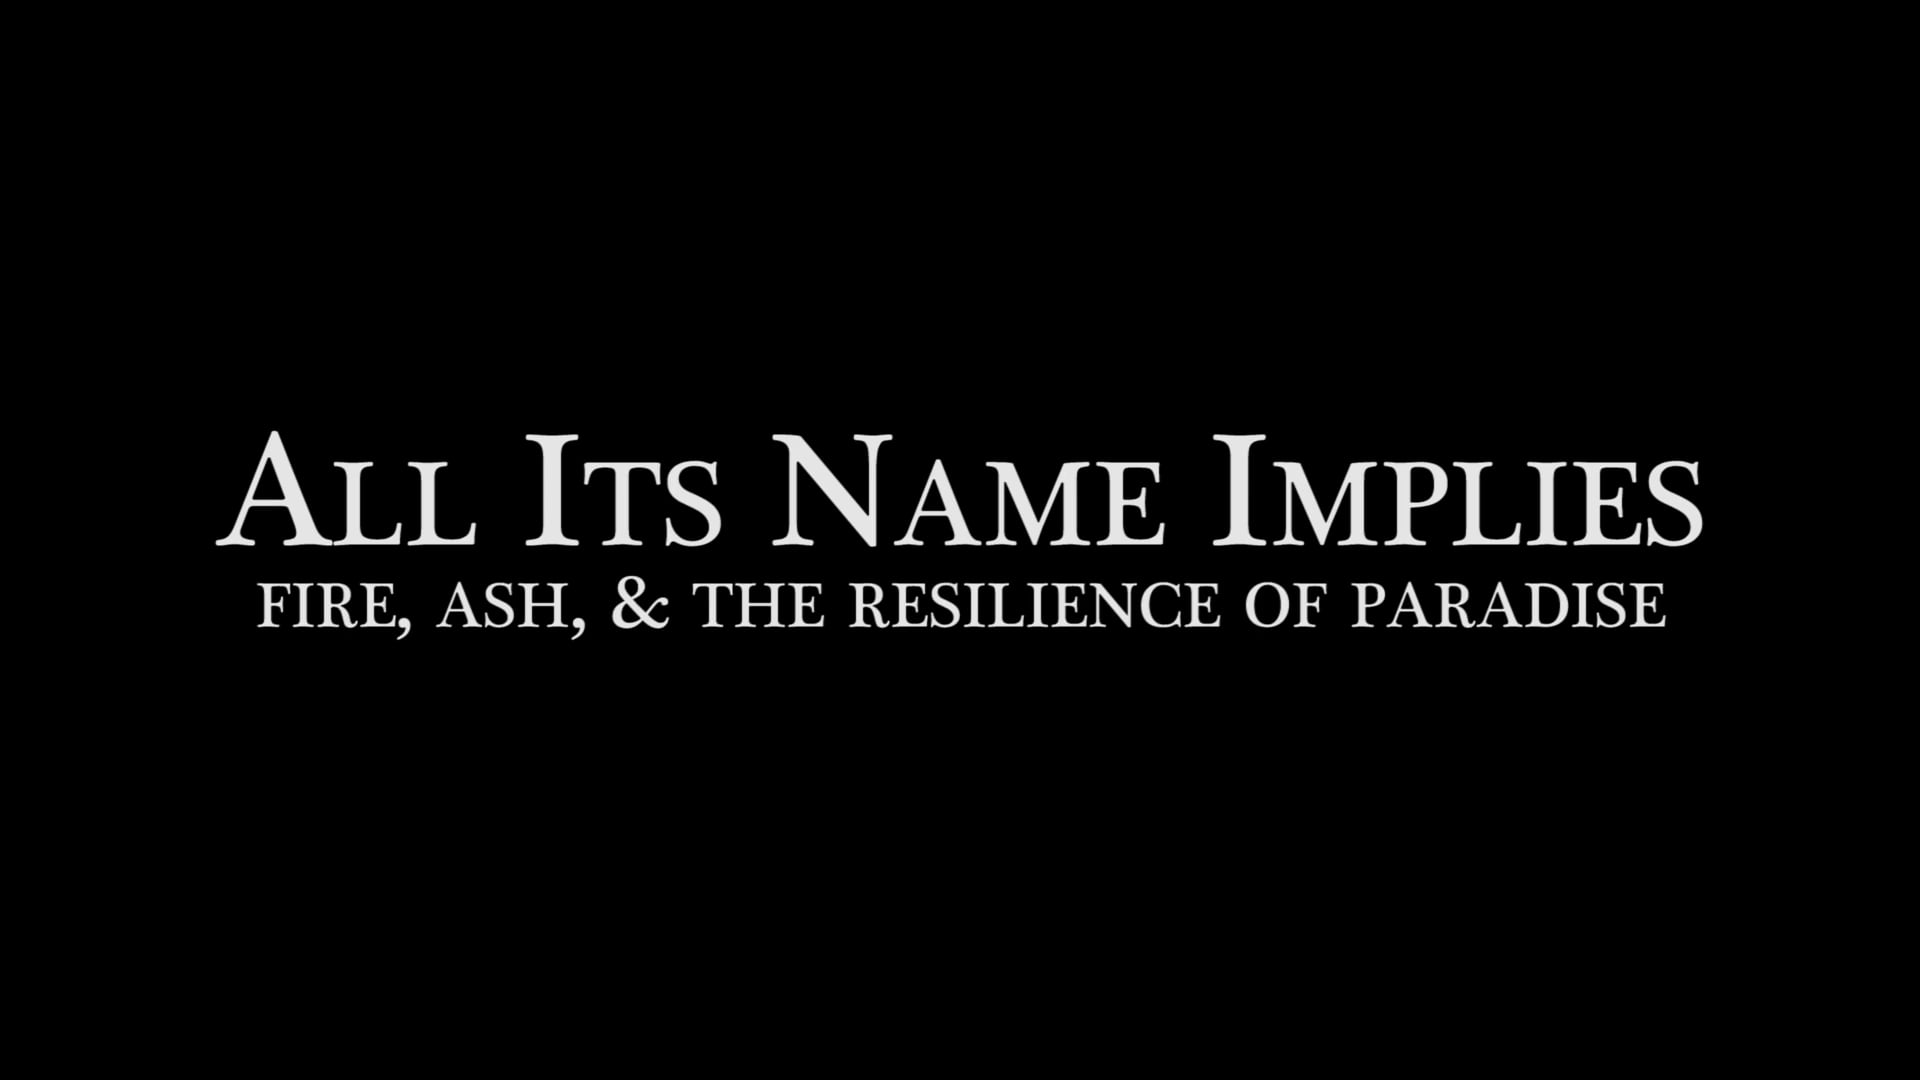 All Its Name Implies - Trailer #1